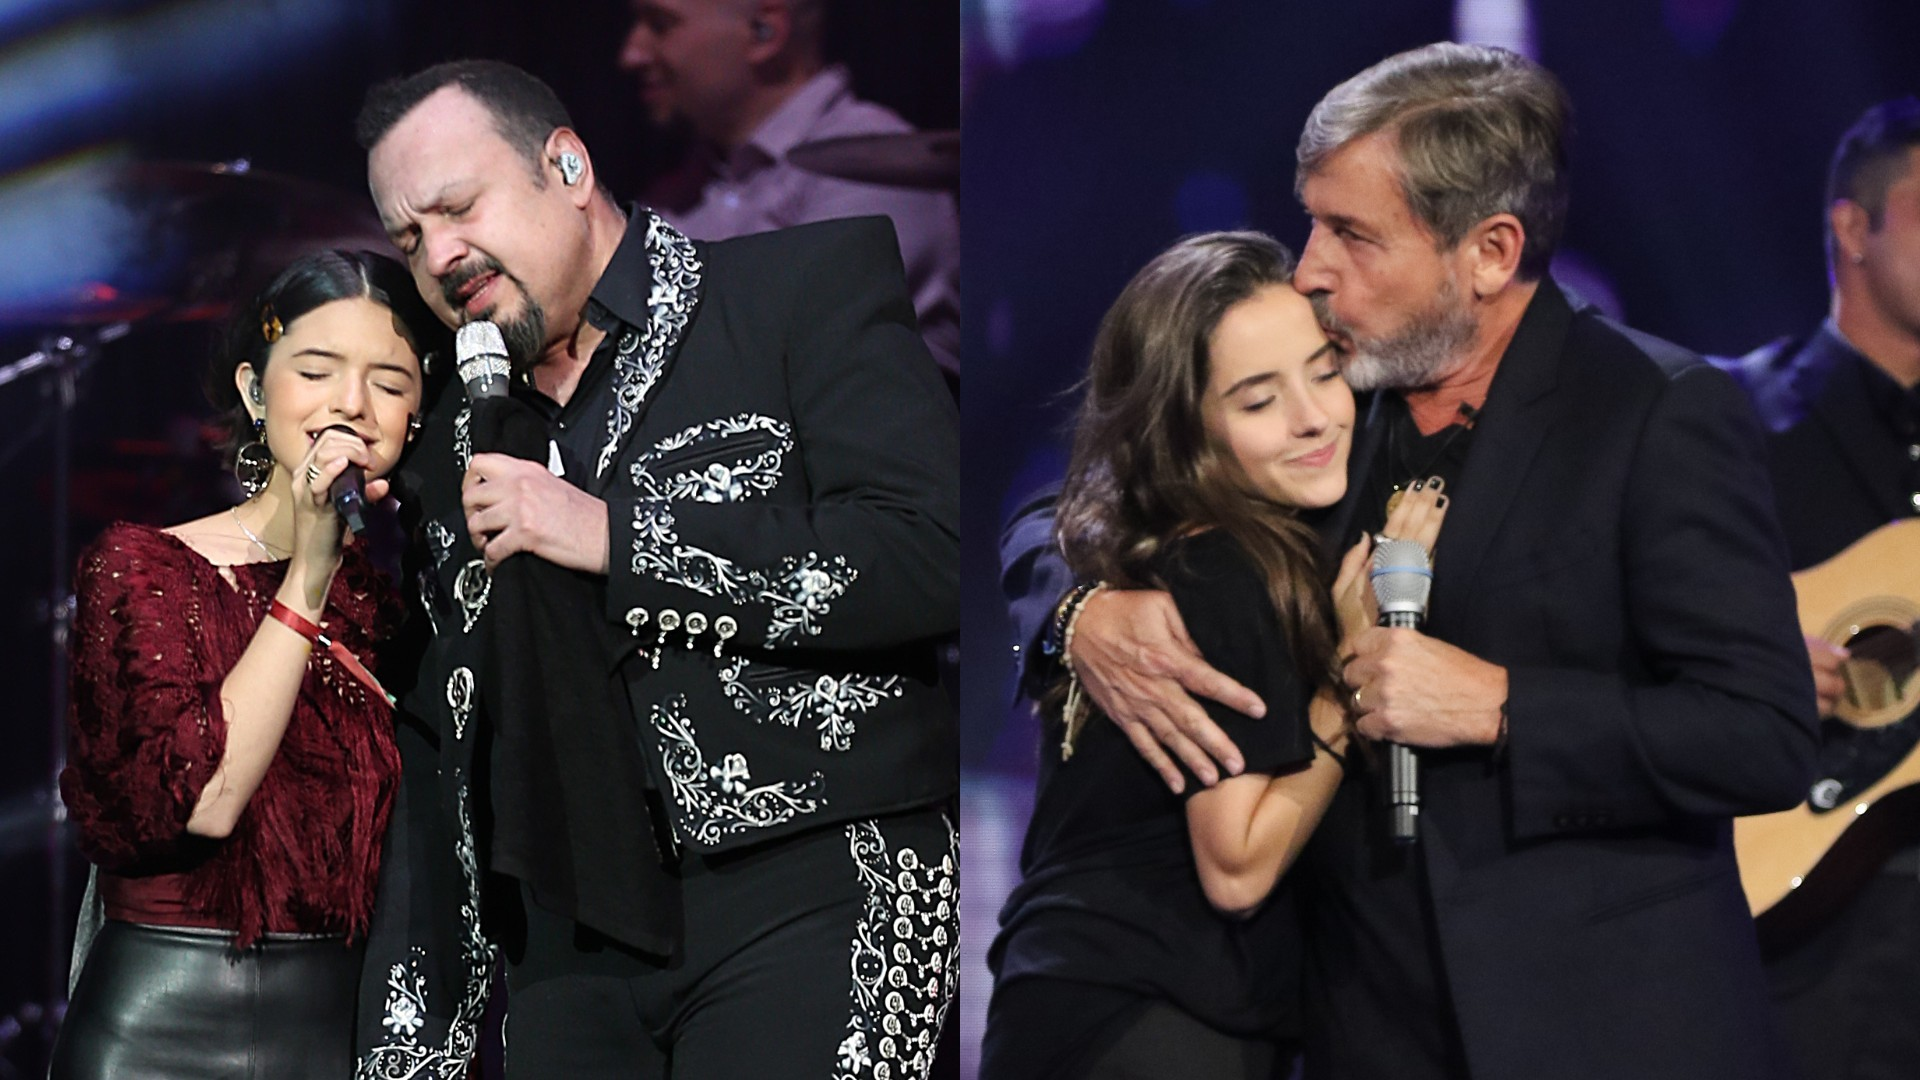 Angela Aguilar And Evaluna Montaner Celebrate Their Fathers And Gush About Their Special Bond